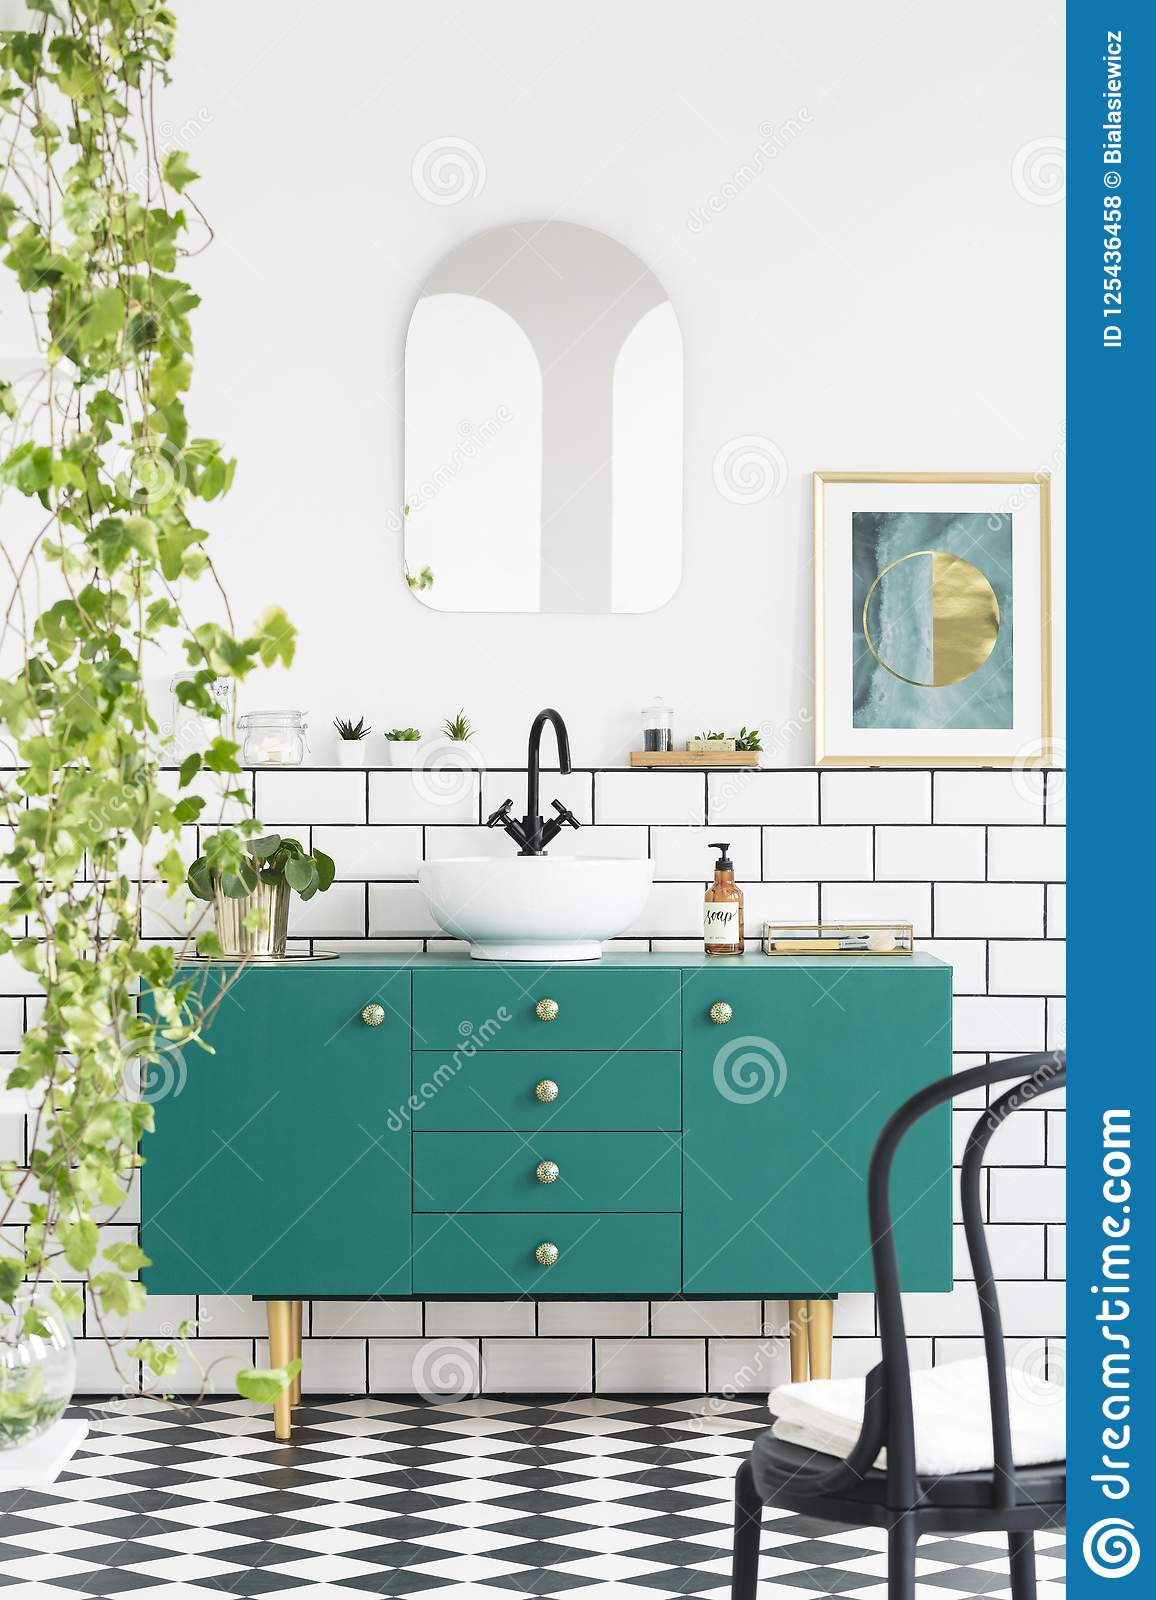 Mirror And Poster Above Green Cabinet In Bathroom Interior With Black Chair And Plants Real Photo Stock Photo Image Of Poster Contrast 125436458